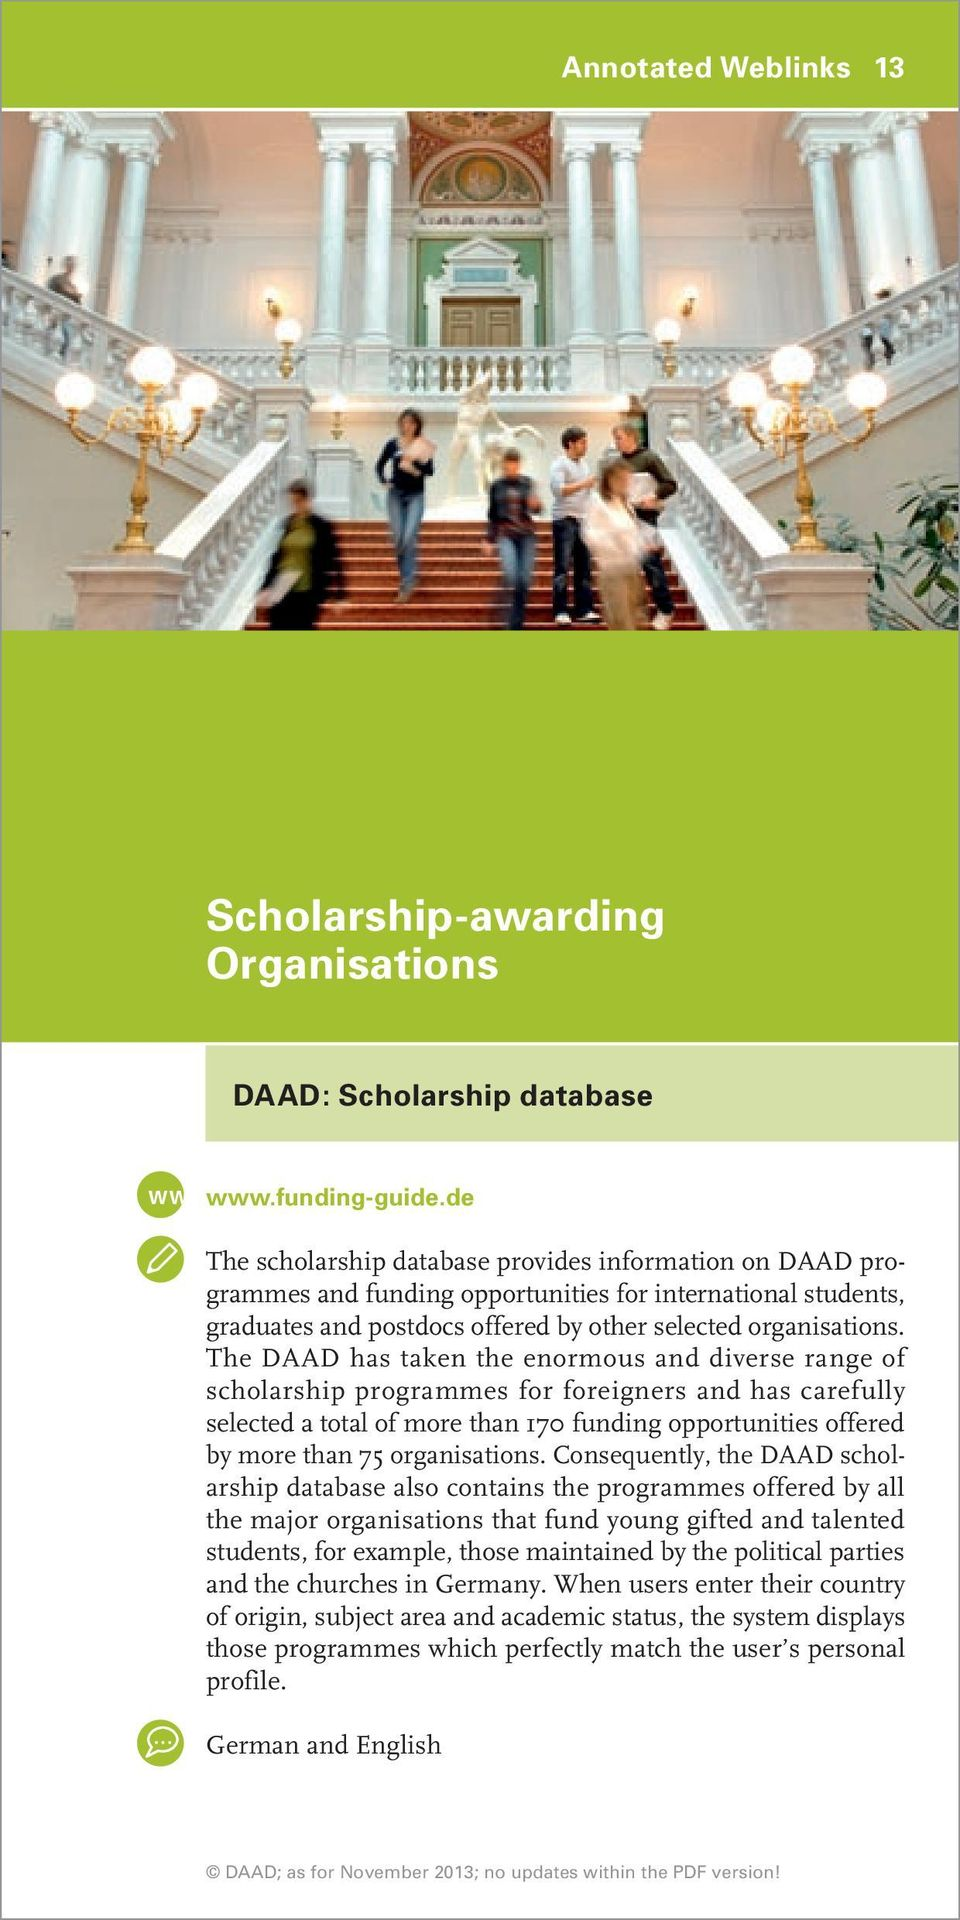 The DAAD has taken the enormous and diverse range of scholar ship programmes for foreigners and has carefully selected a total of more than 170 funding opportunities offered by more than 75